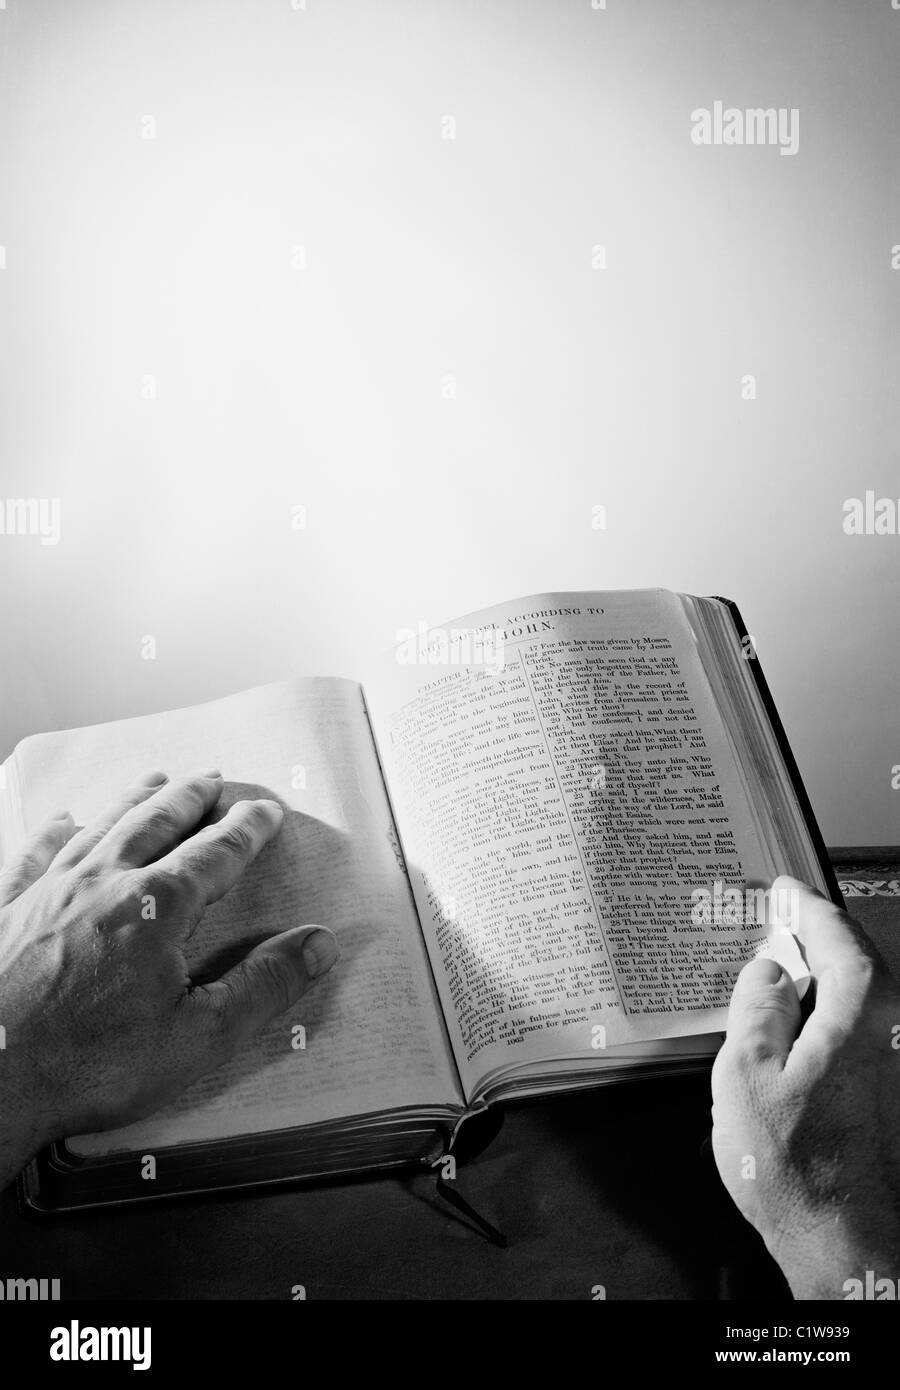 Mans hands on bible - Stock Image